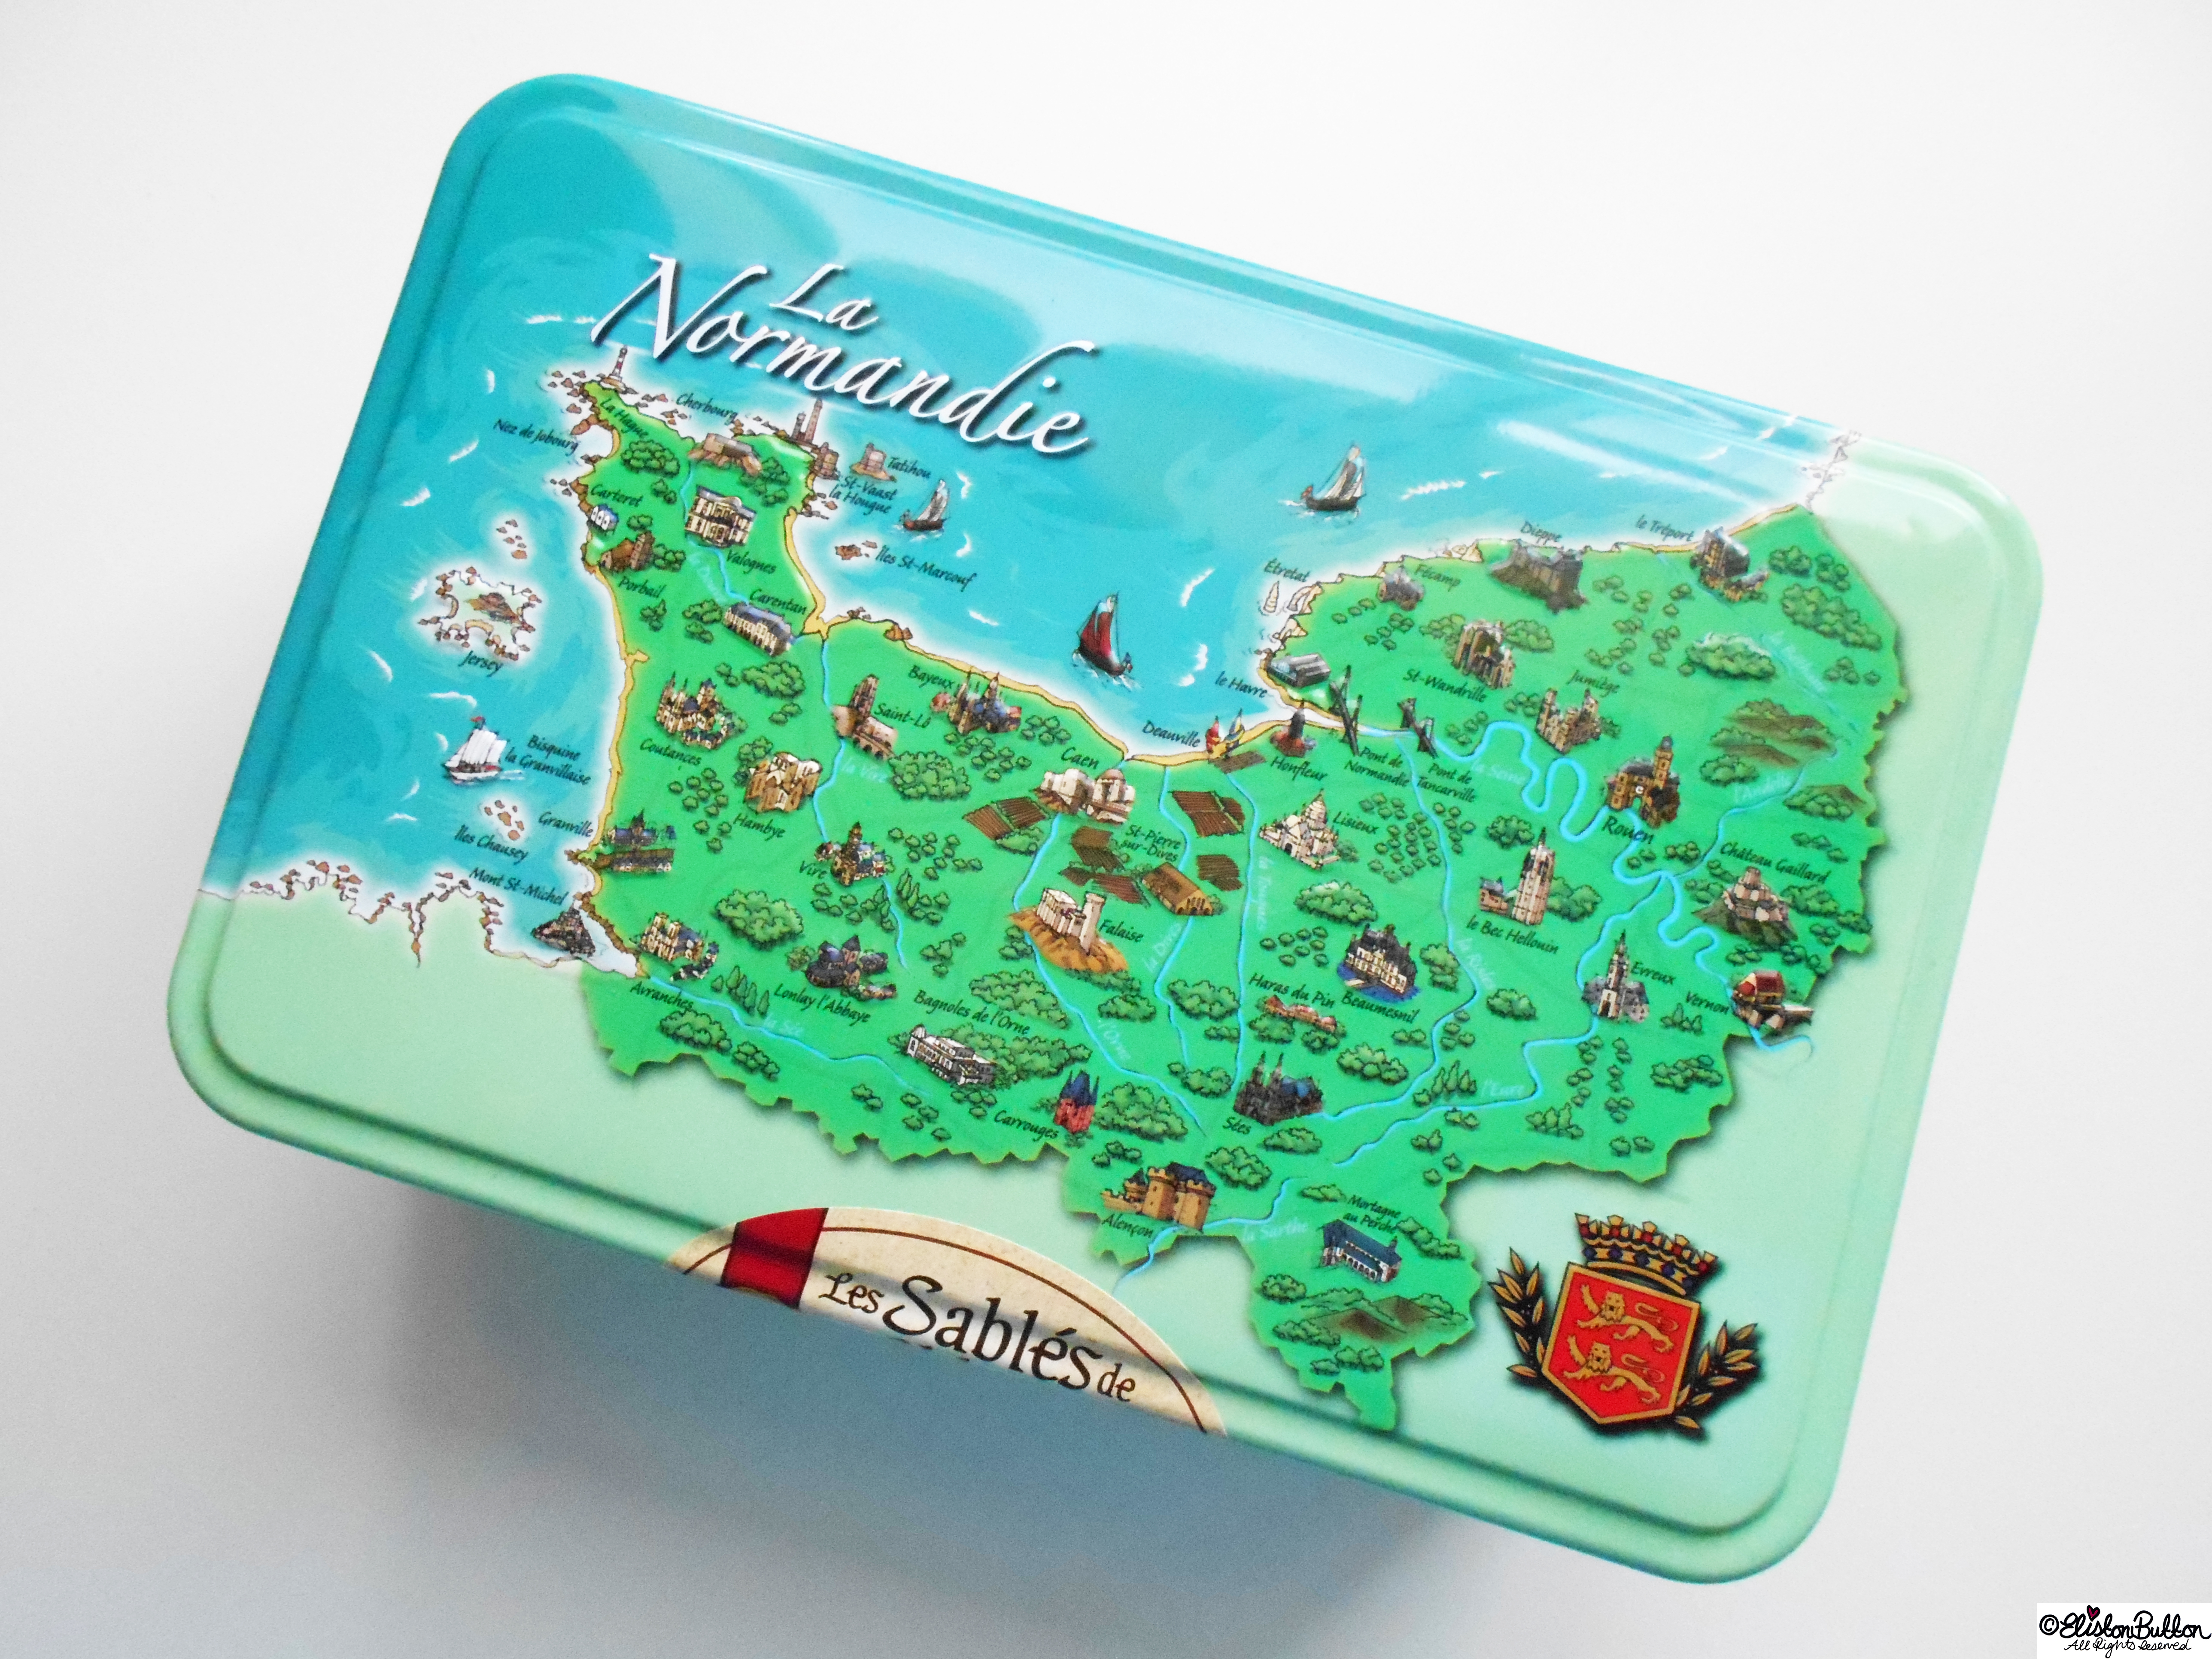 Normandy Biscuit Tin - Gifts from France at www.elistonbutton.com - Eliston Button - That Crafty Kid – Art, Design, Craft & Adventure.